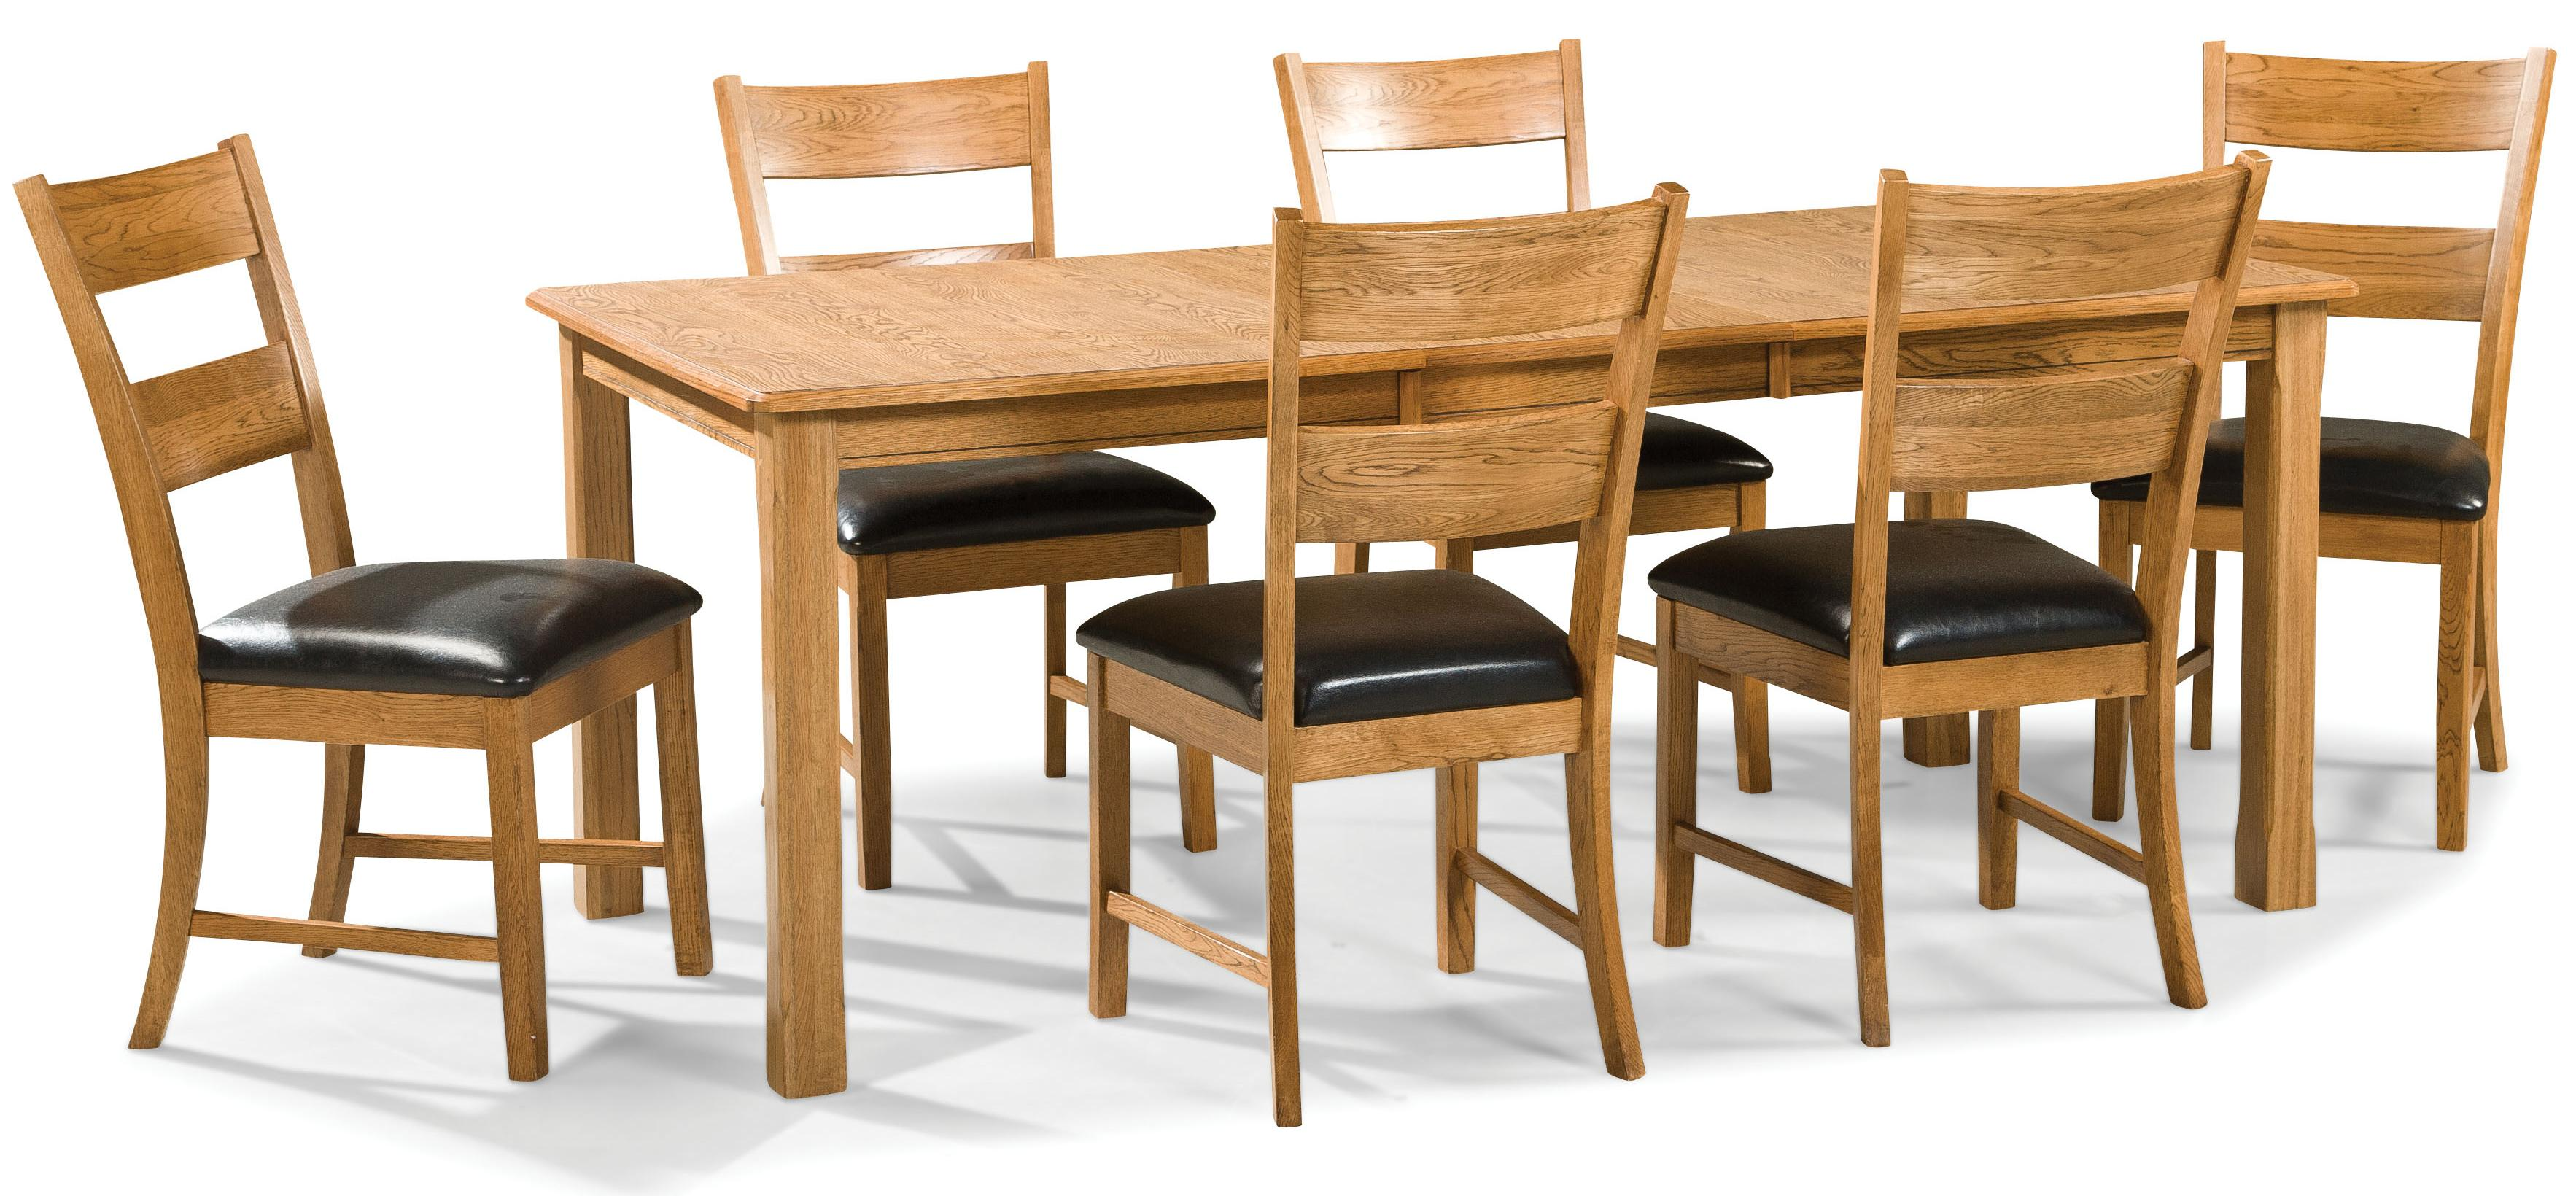 Intercon Family Dining 7 Piece Dining Set - Item Number: FD-TA-L3678-CNT-C+6xCH-169C